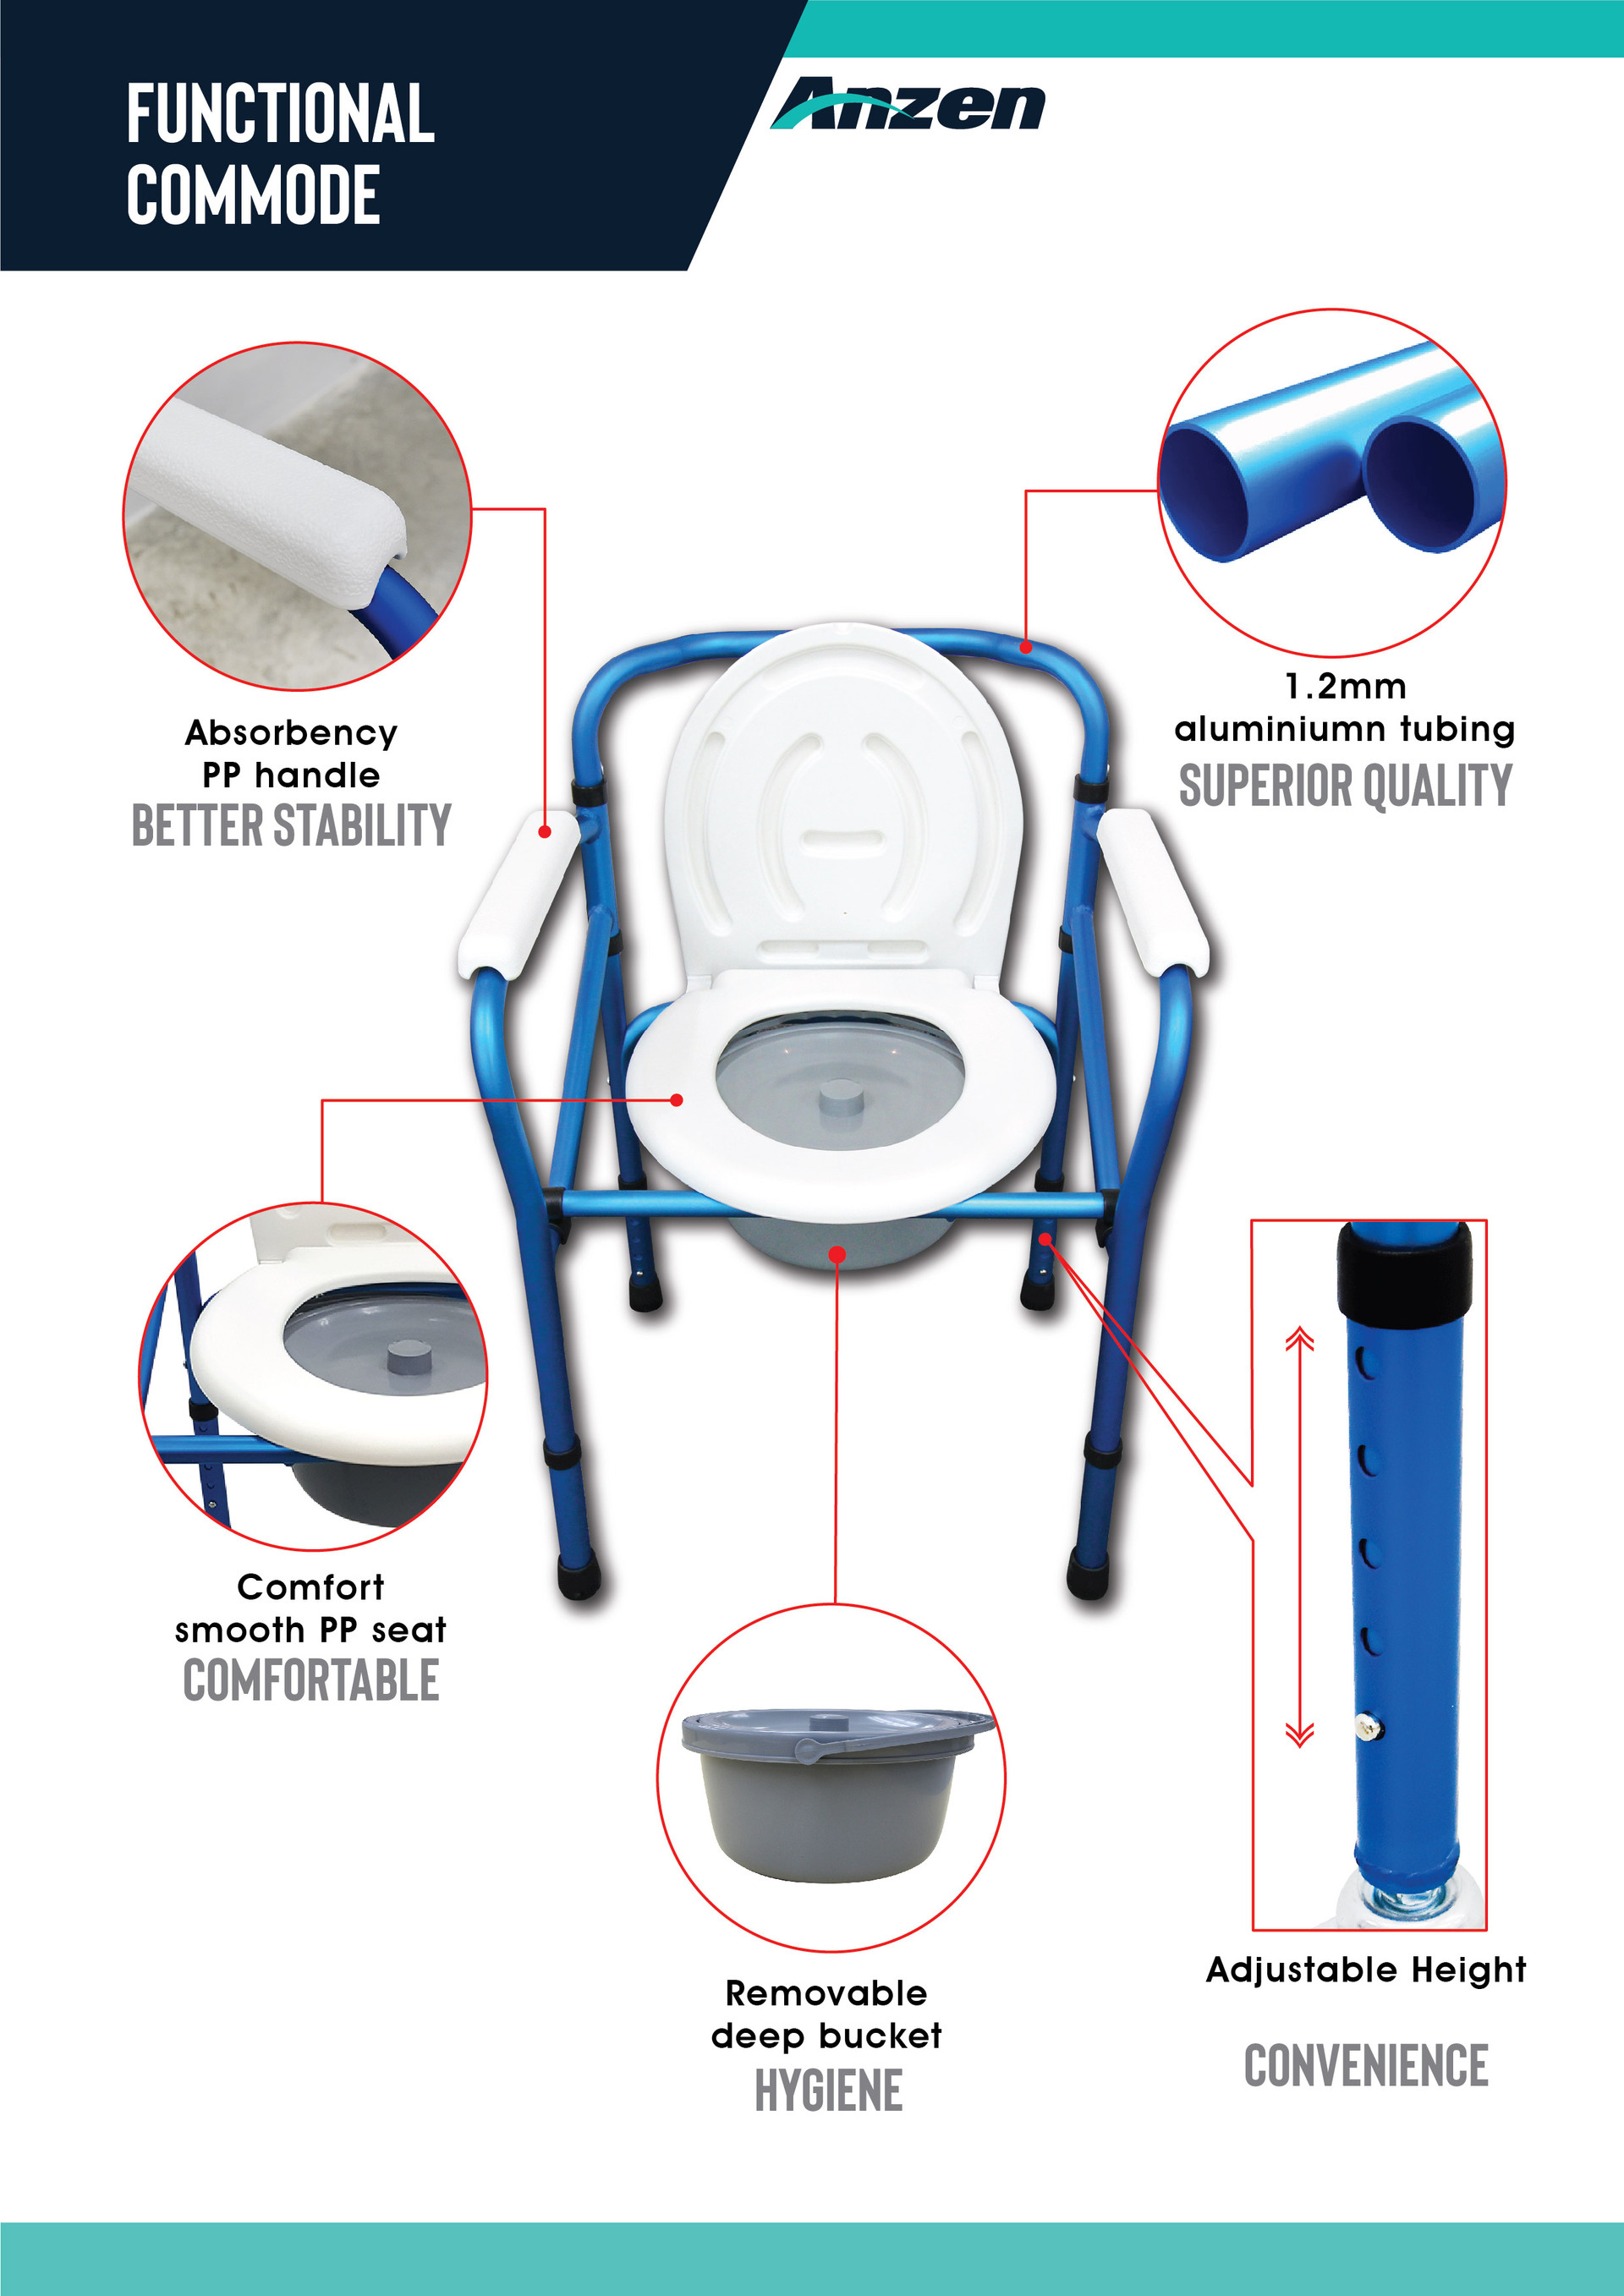 Commode Chair-23Jan2020-03.jpg